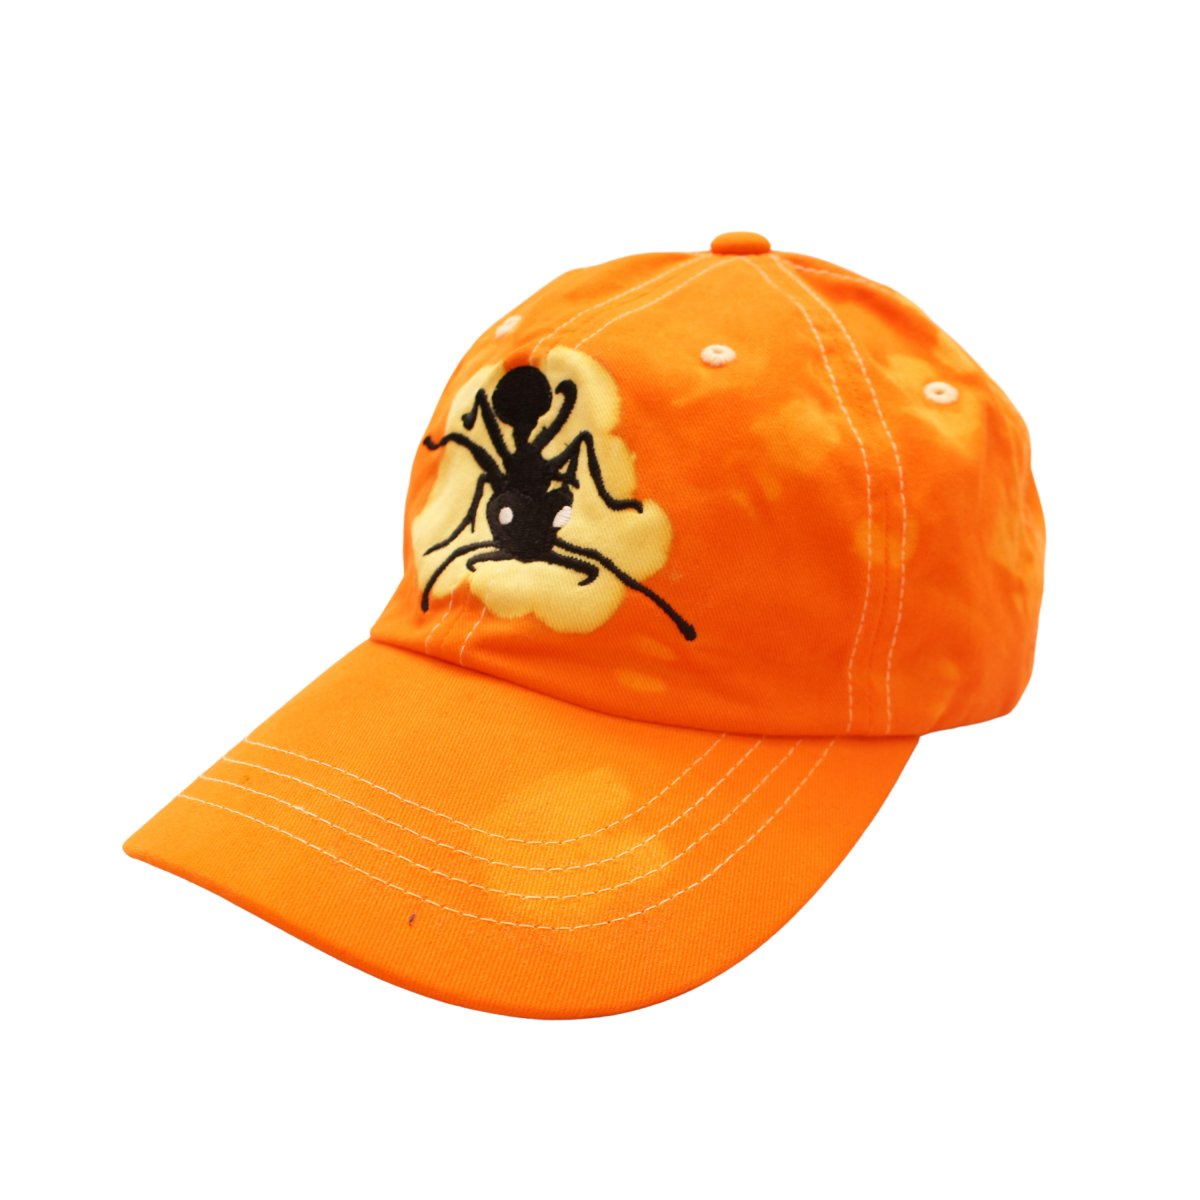 Big Ant x Hank Reavis Cap【Orange】